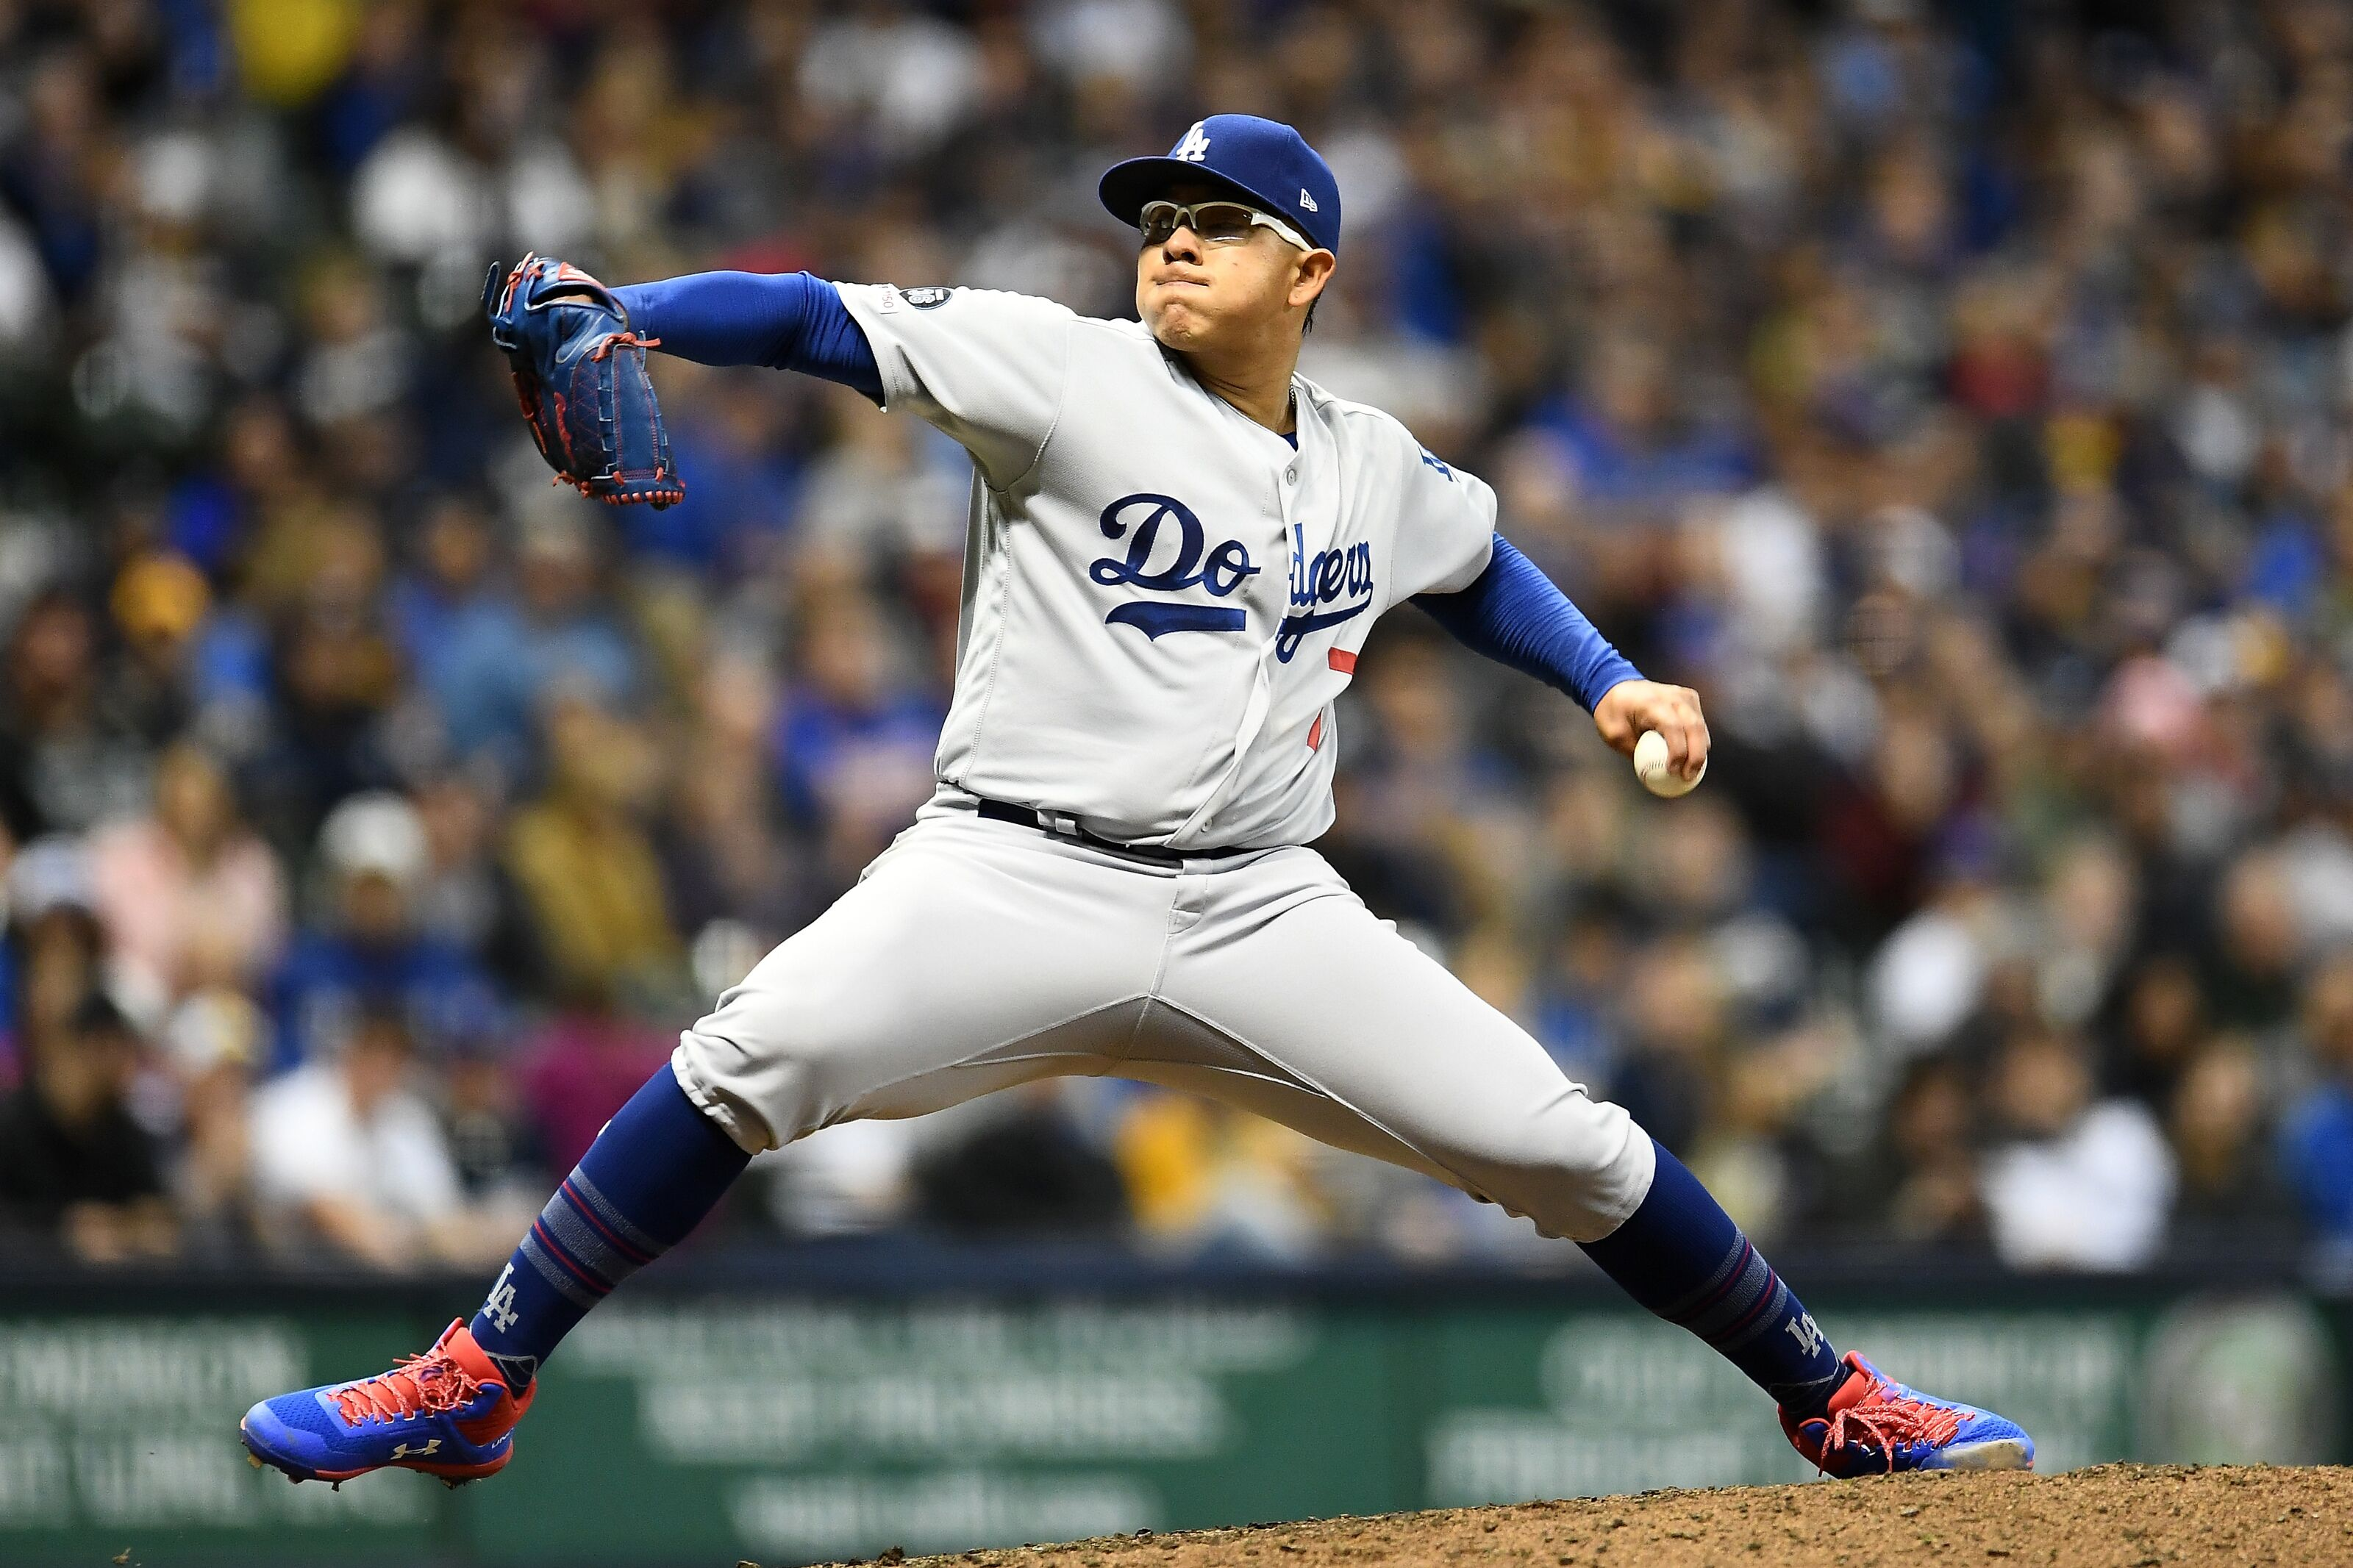 MILWAUKEE, WISCONSIN - APRIL 18: Julio Urias #7 of the Los Angeles Dodgers throws a pitch during a game against the Milwaukee Brewers at Miller Park on April 18, 2019 in Milwaukee, Wisconsin. (Photo by Stacy Revere/Getty Images)